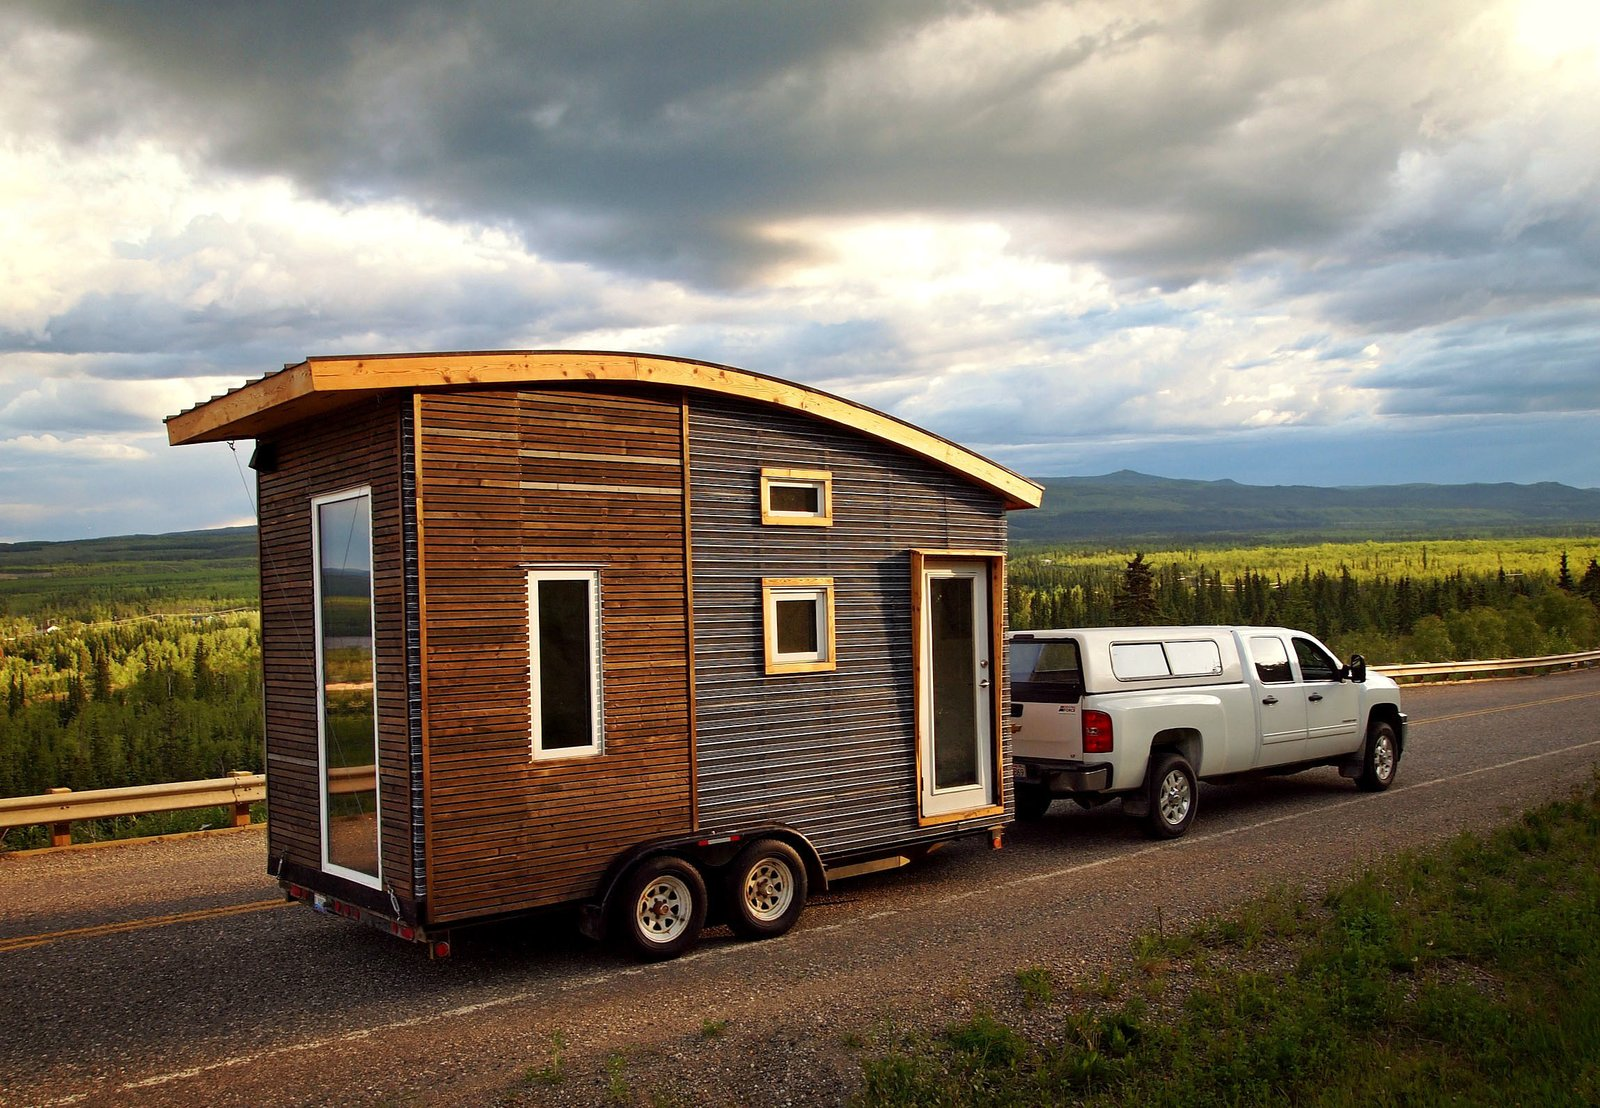 The Leaf House is a lightweight, mobile trailer that was carefully engineered to weigh less than 5,000 pounds. The designer, Laird Herbert, used a metal-mesh, open-joint rainscreen as the cladding on the front end, and spruce pine at the back.  Photo 3 of 10 in 10 Tiny Trailers to Take on an Adventure from A Modern Trailer is an Experiment in Small-Space Living